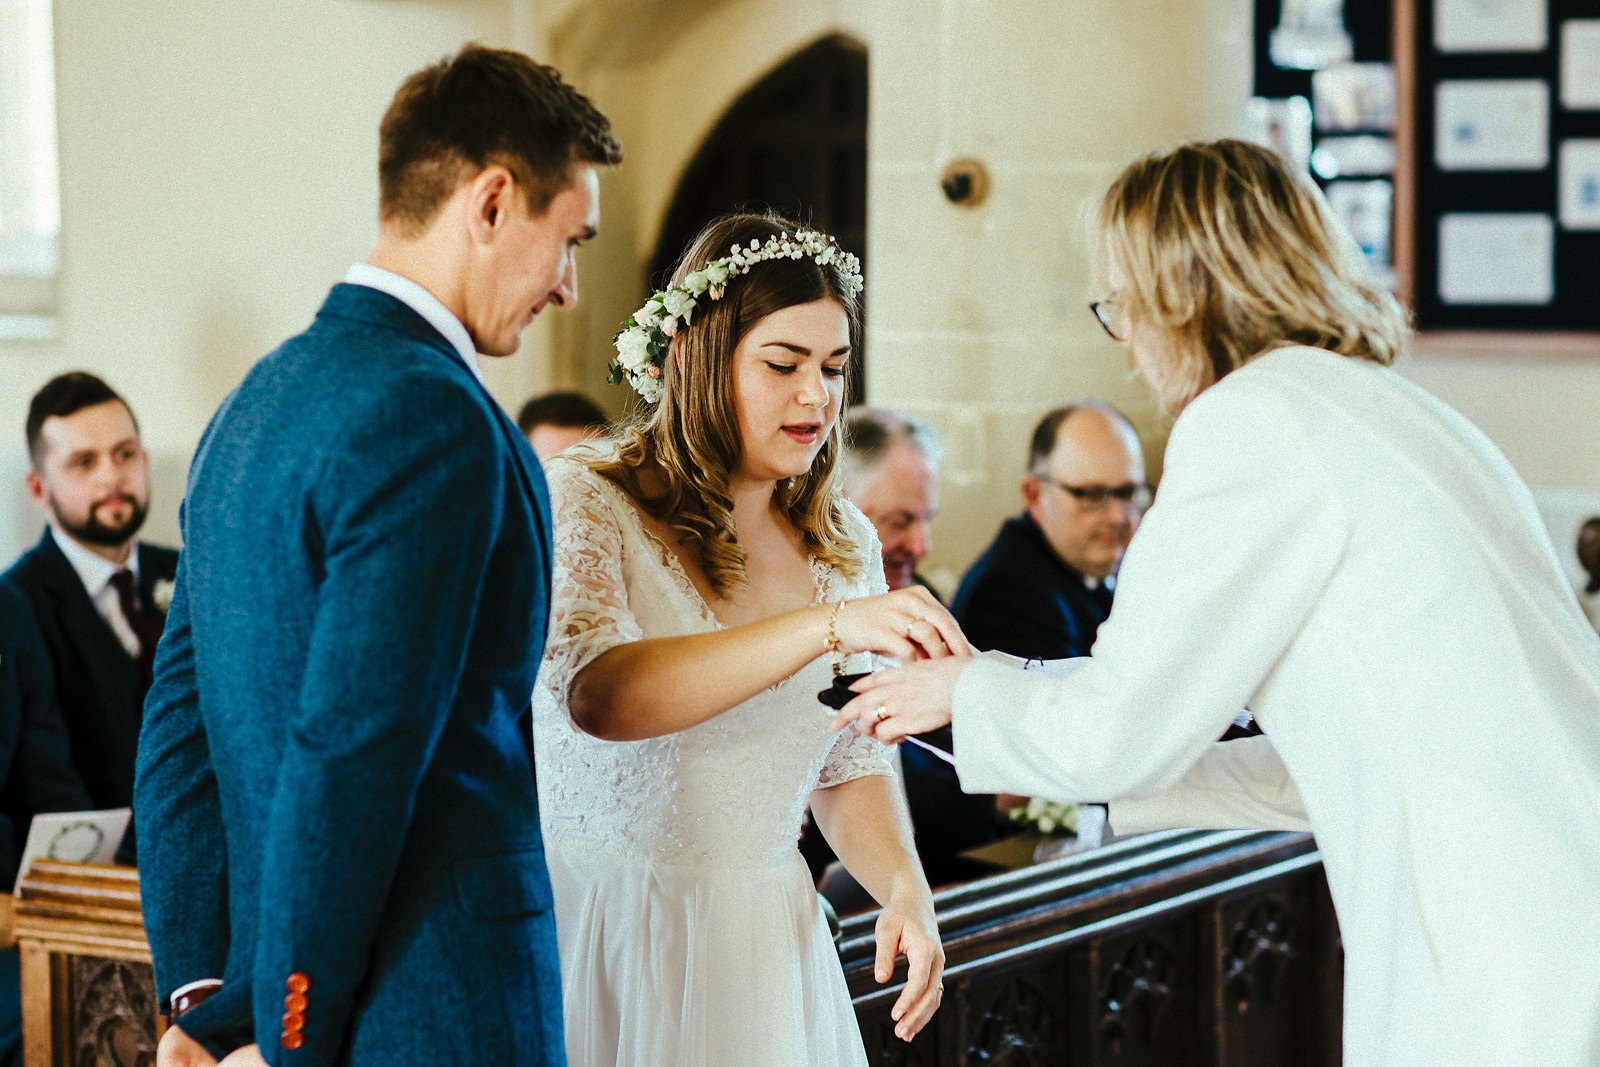 Exchange of rings at St Mary's church Haddenham photo